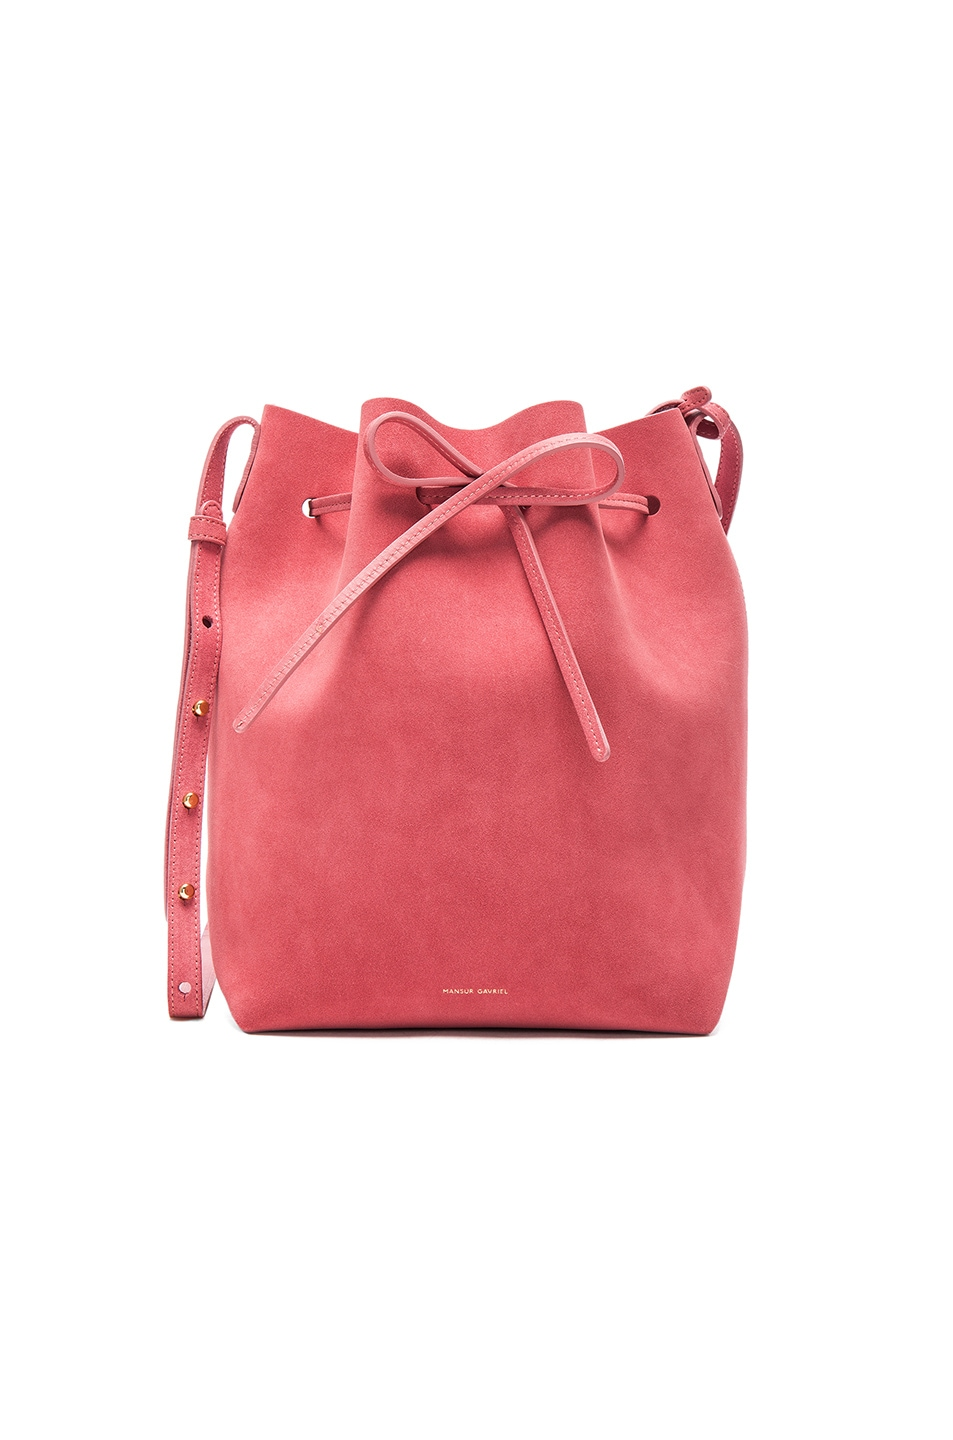 Image 1 of Mansur Gavriel Bucket Bag in Blush Suede